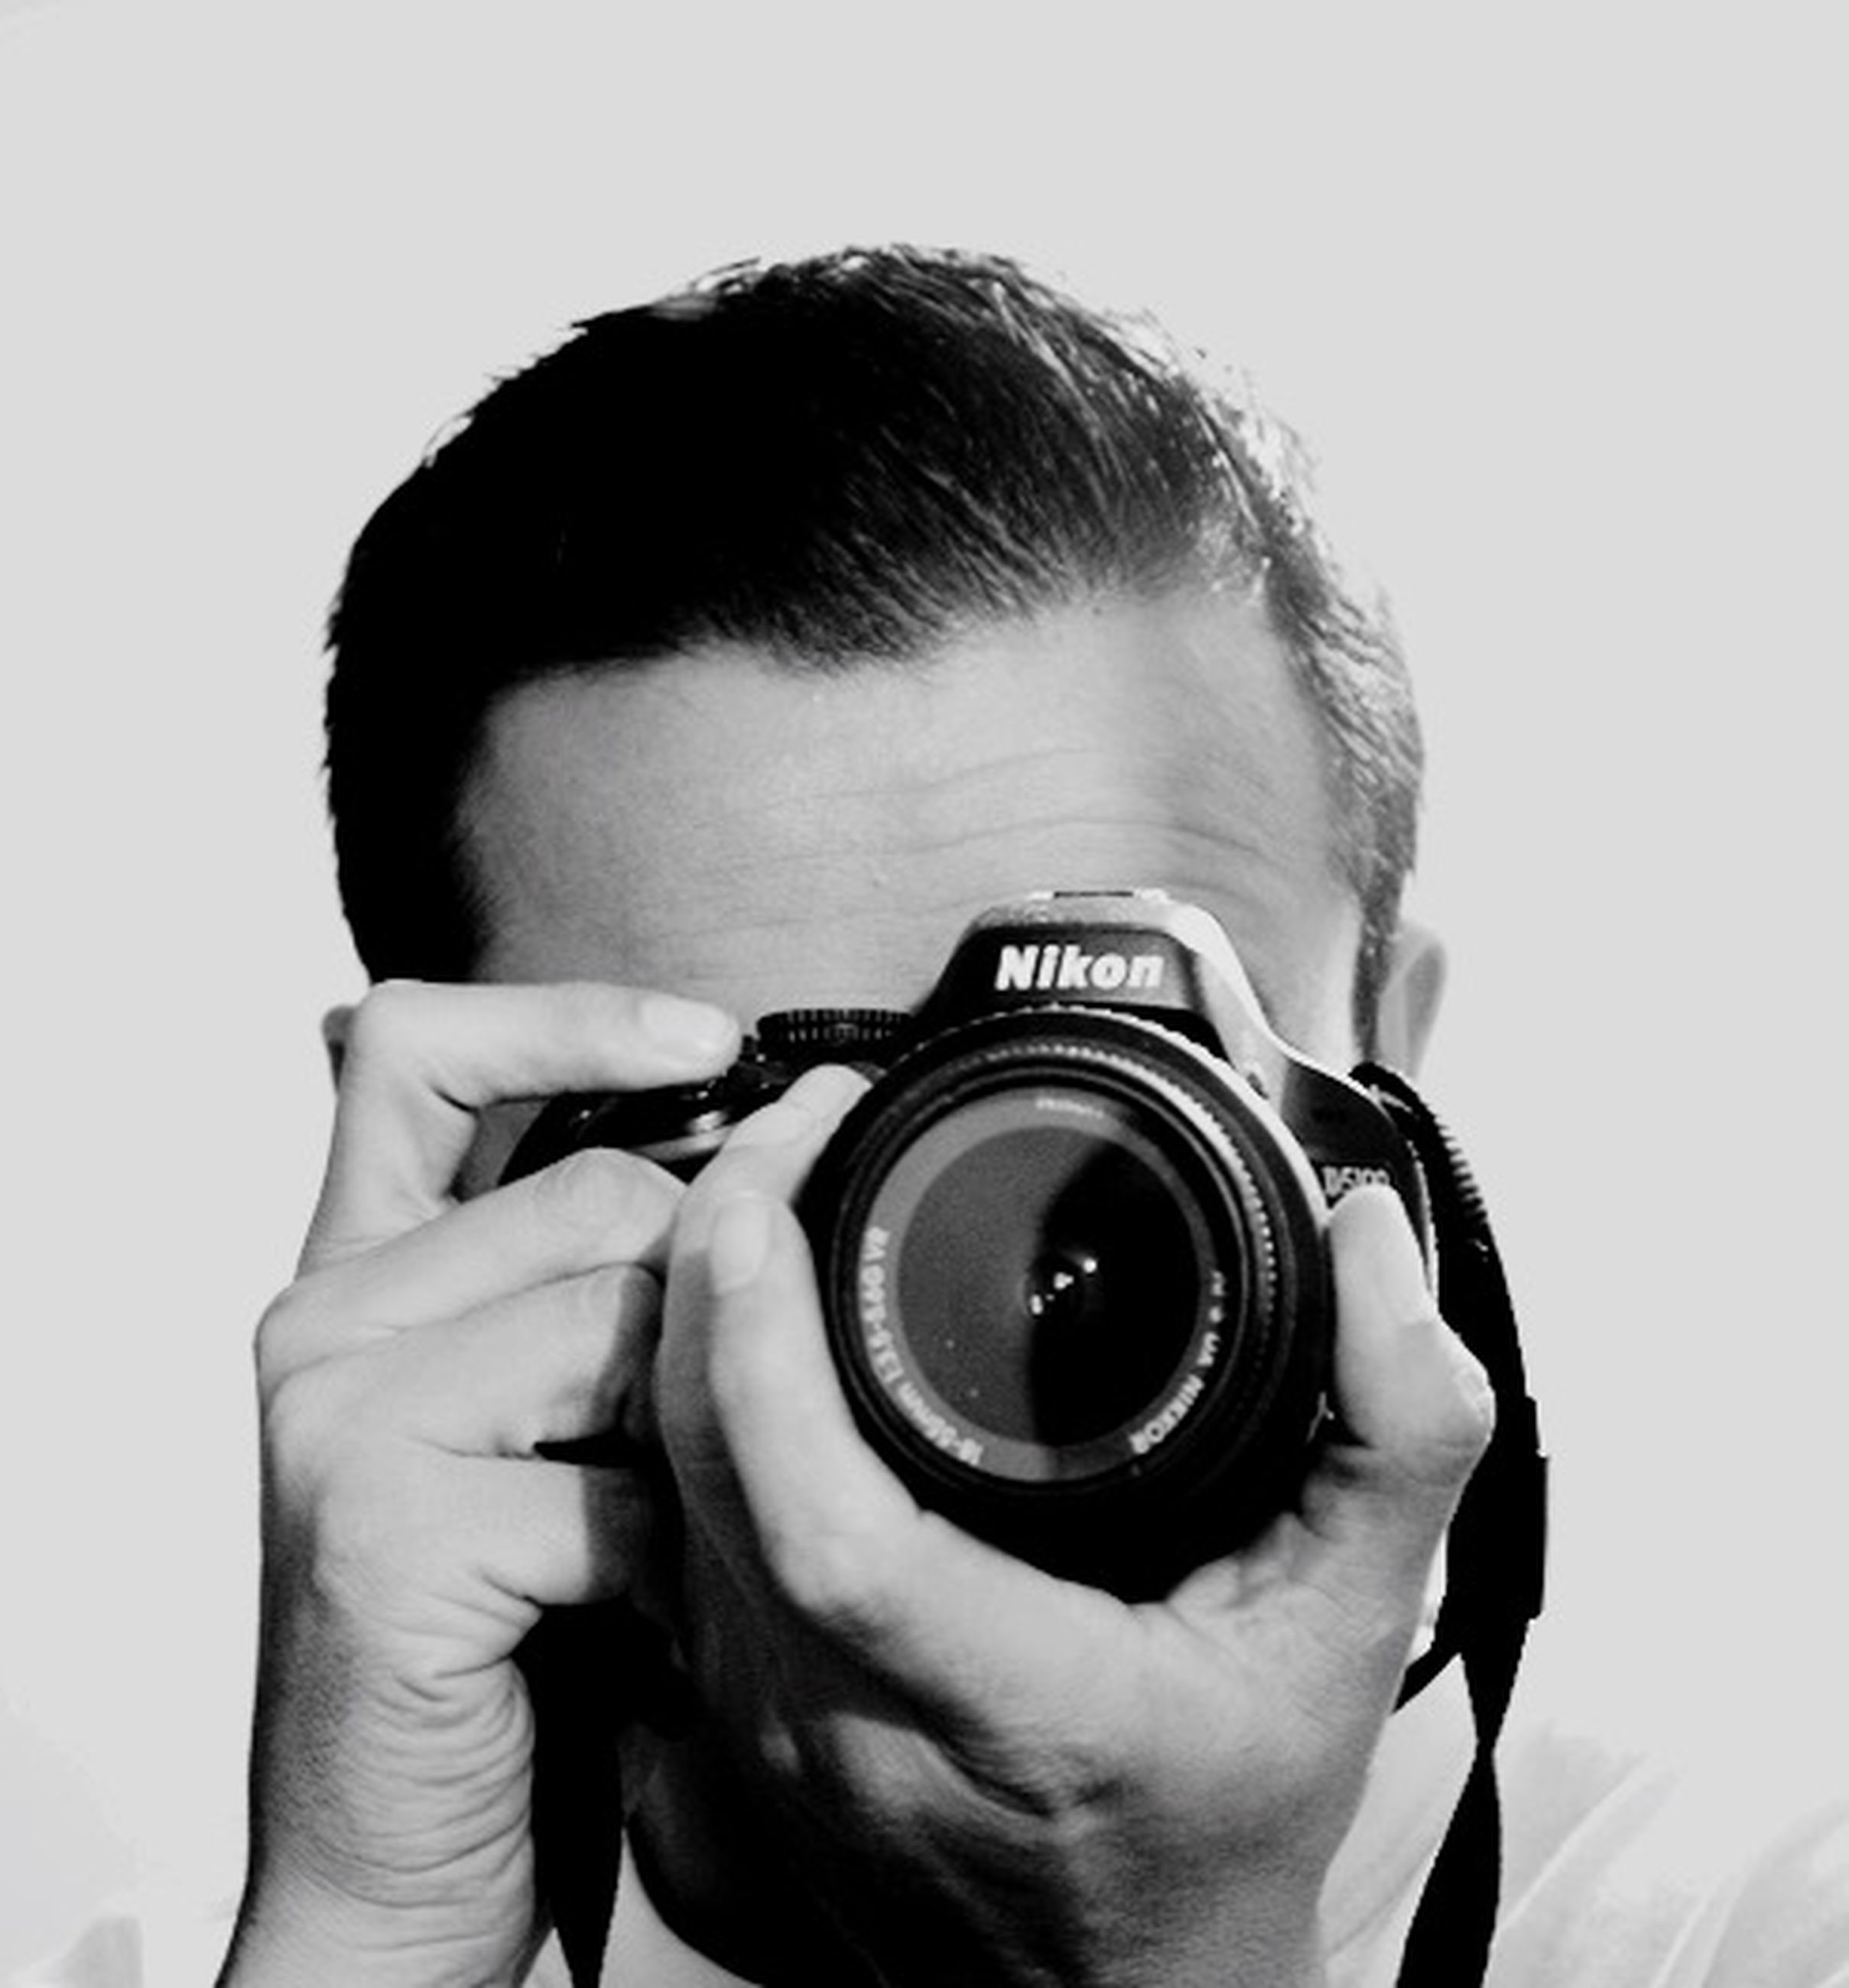 lifestyles, holding, photography themes, leisure activity, photographing, camera - photographic equipment, technology, person, men, digital camera, headshot, sunglasses, close-up, smart phone, young adult, young men, camera